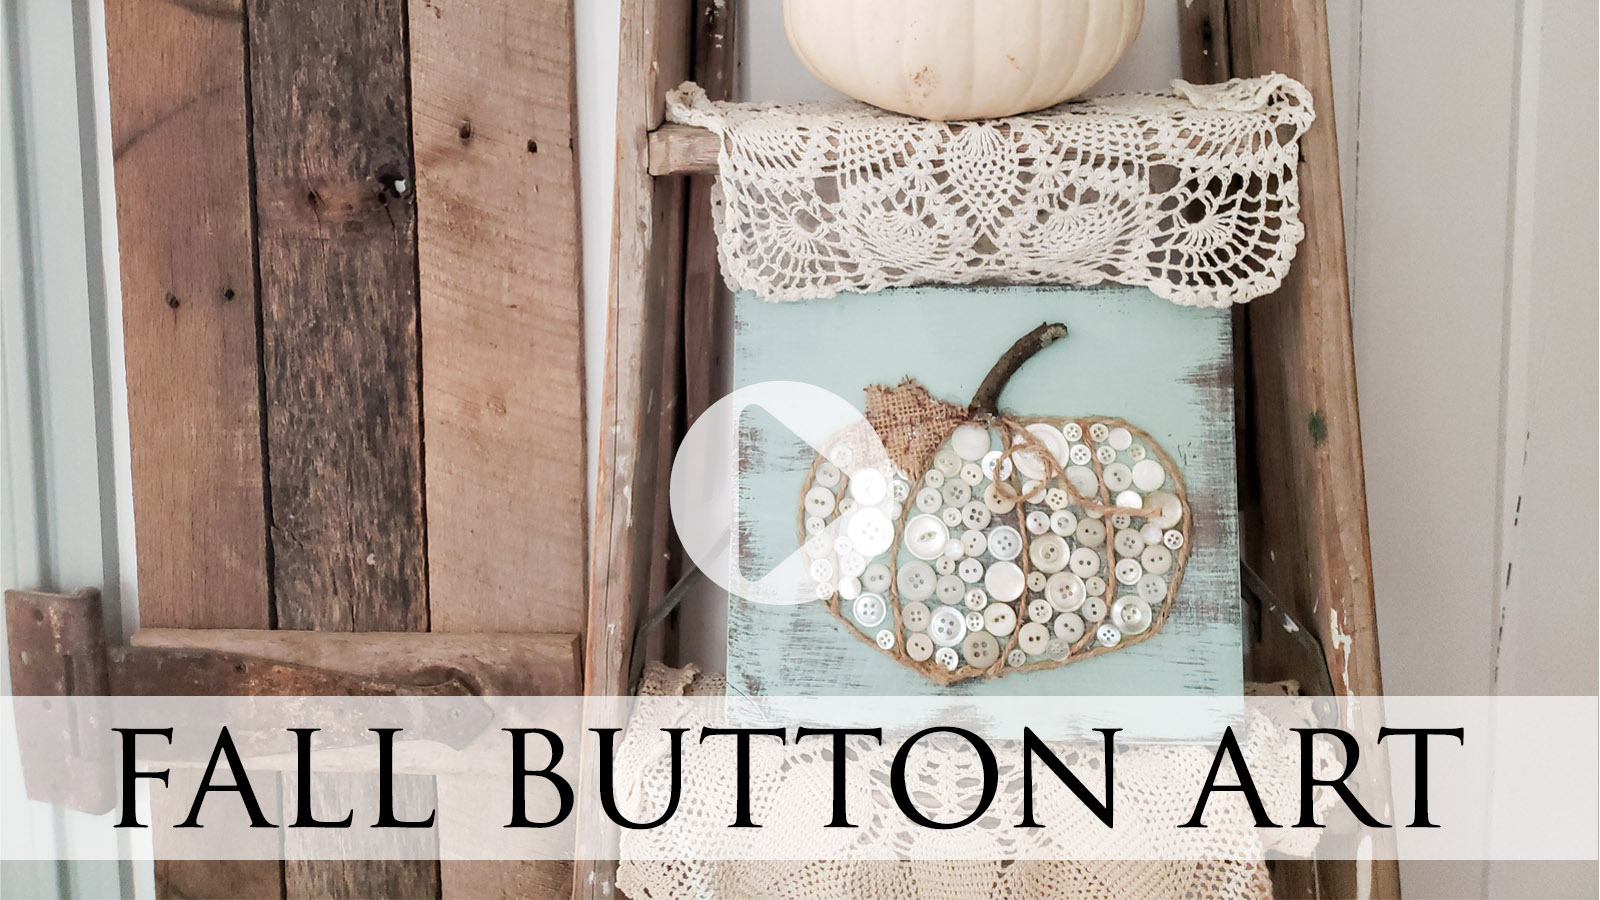 Create fun fall art with upcycled buttons by Larissa of Prodigal Pieces & Kids | prodigalpieces.com #prodigalpieces #fall #crafts #autumn #handmade #kids